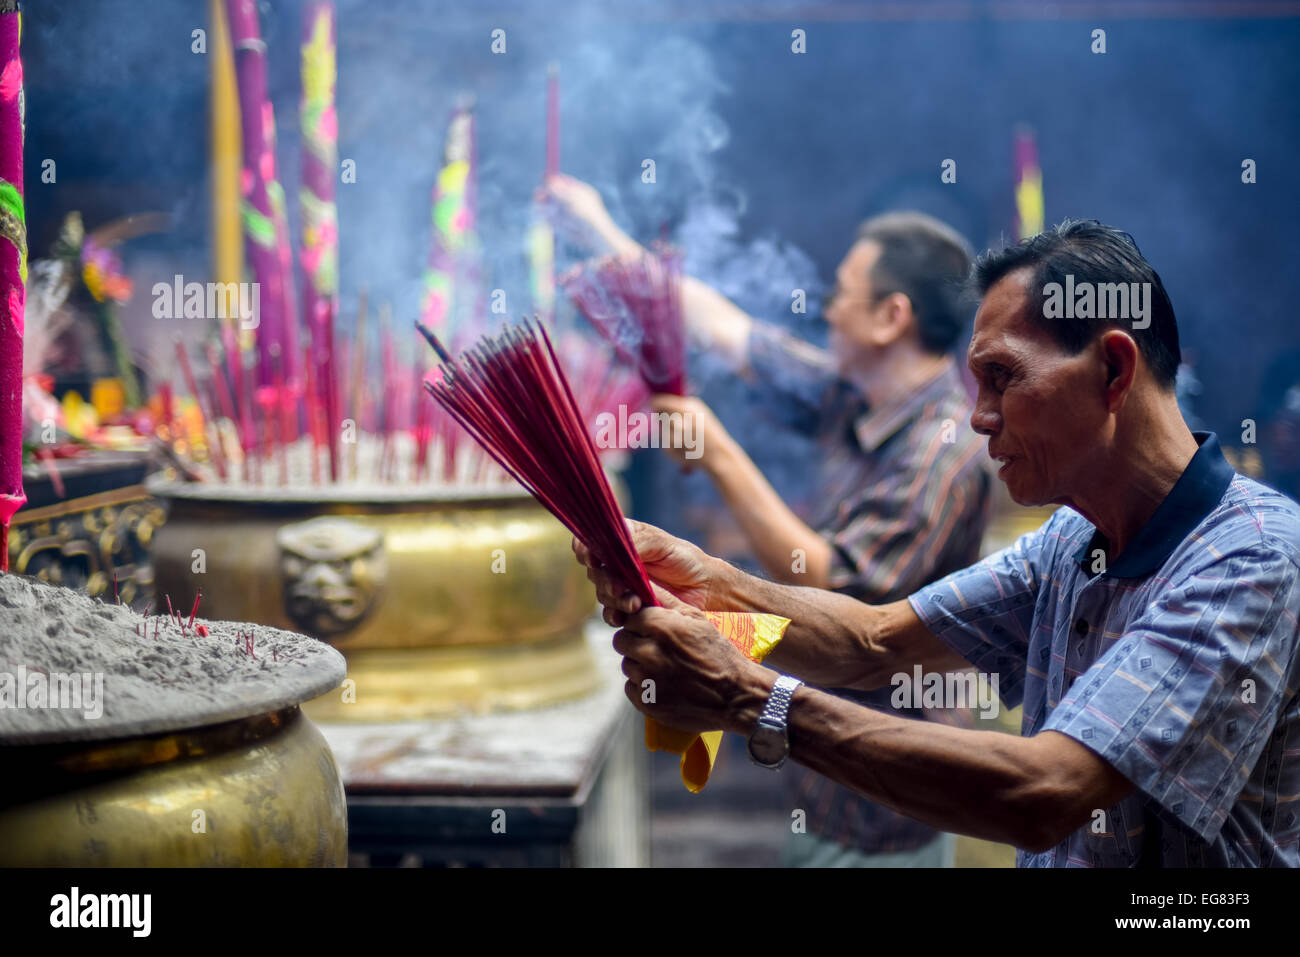 People pray with incense sticks called Hio on New Year's Eve